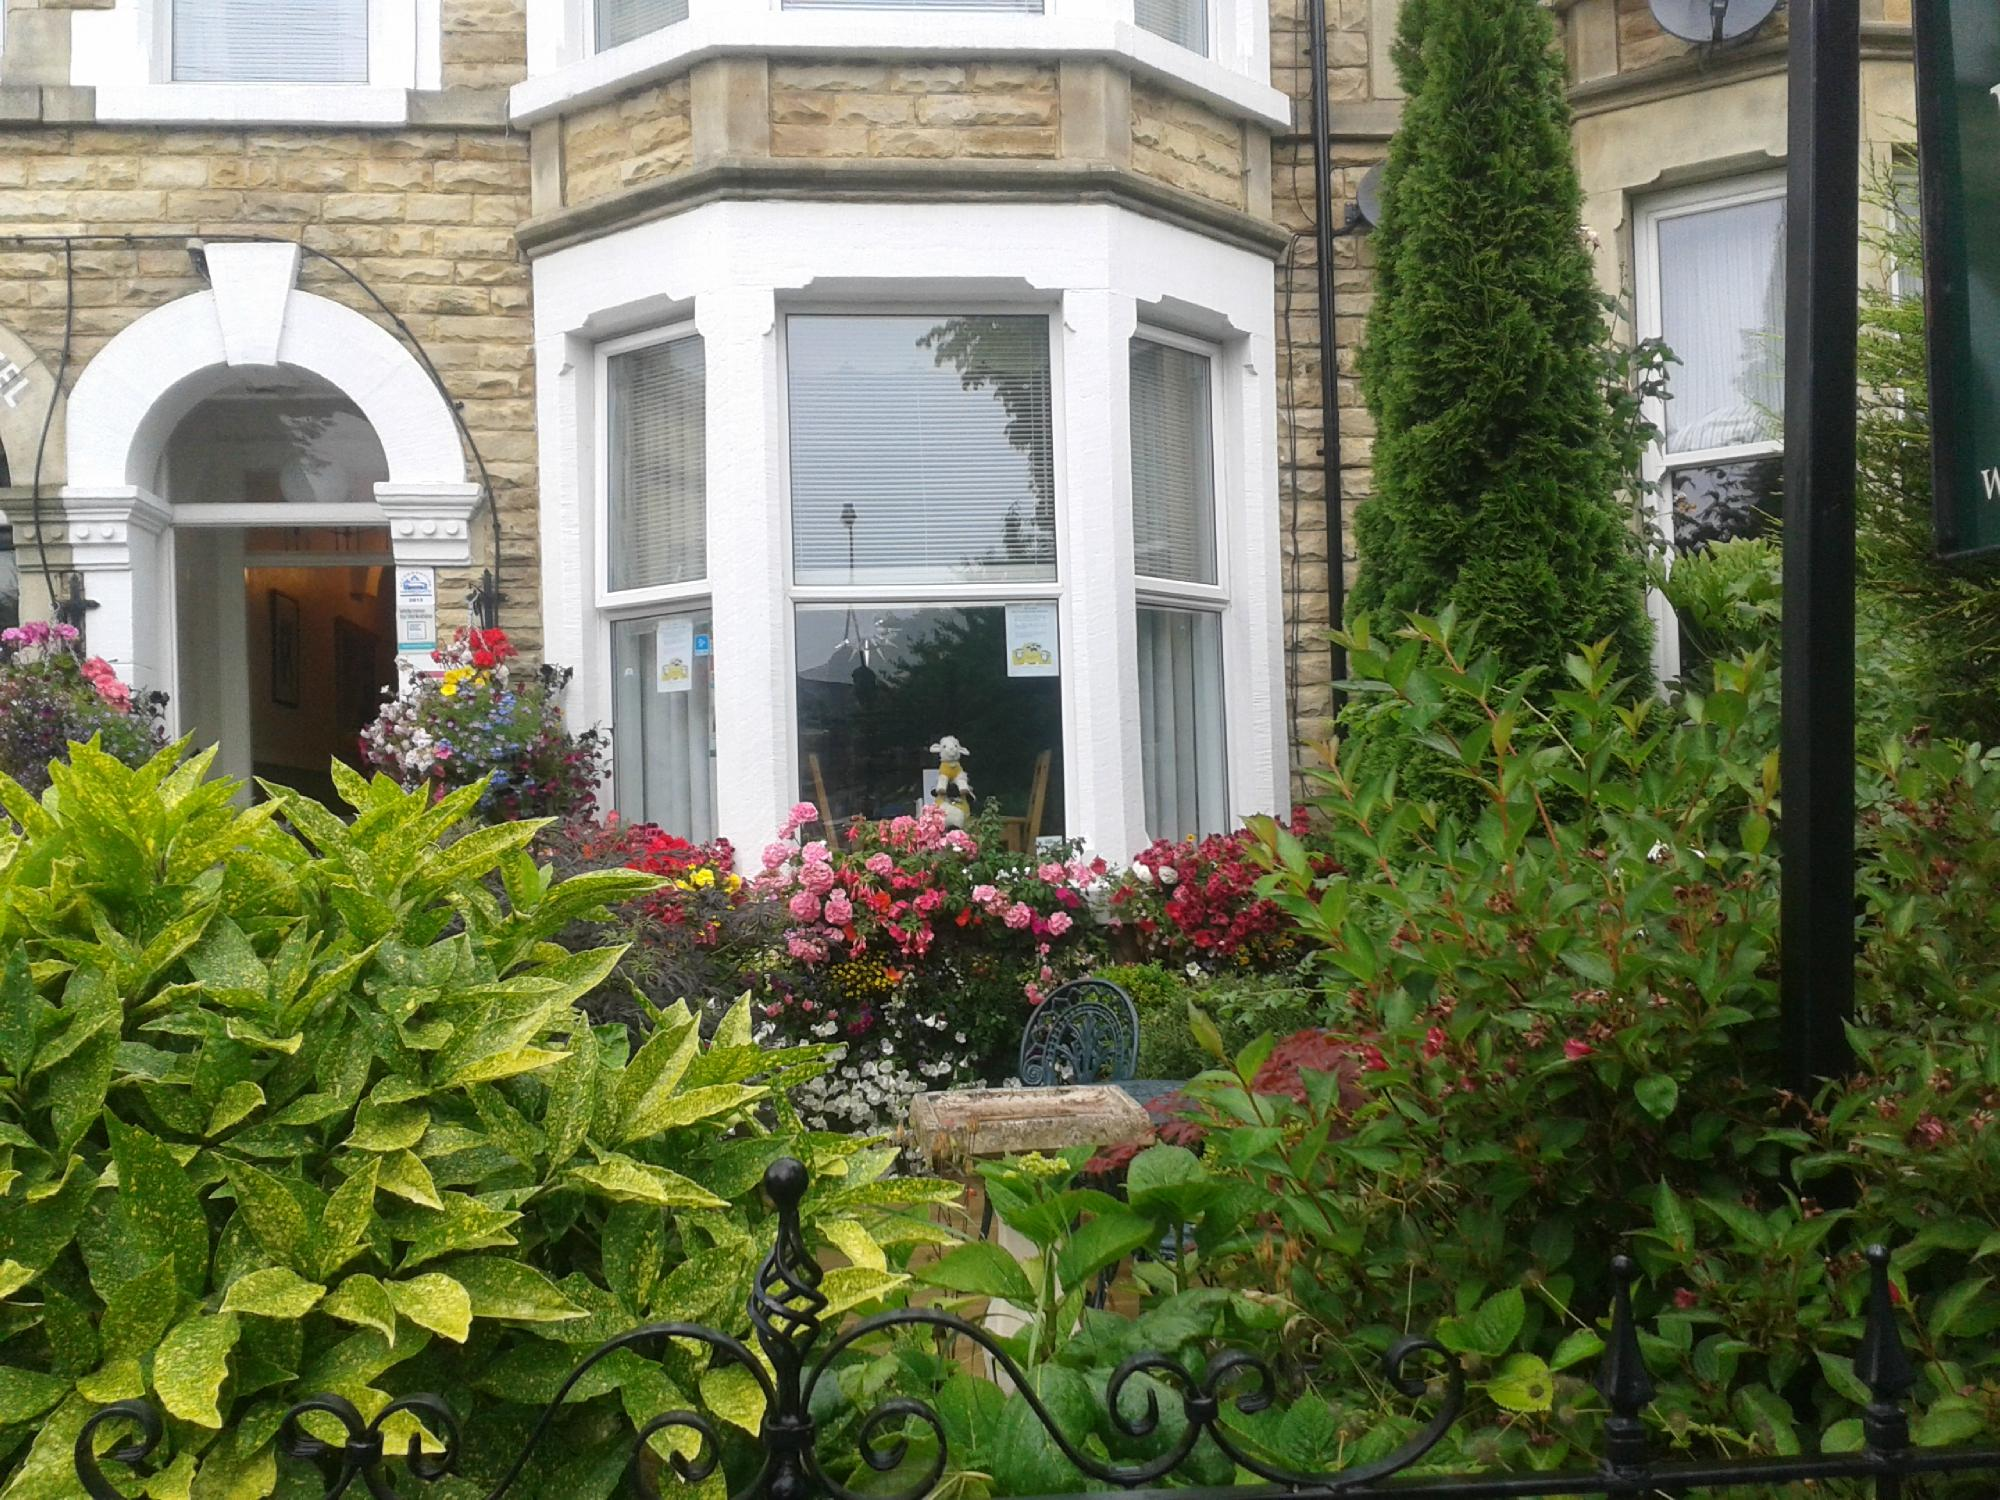 The Welford Bed & Breakfast